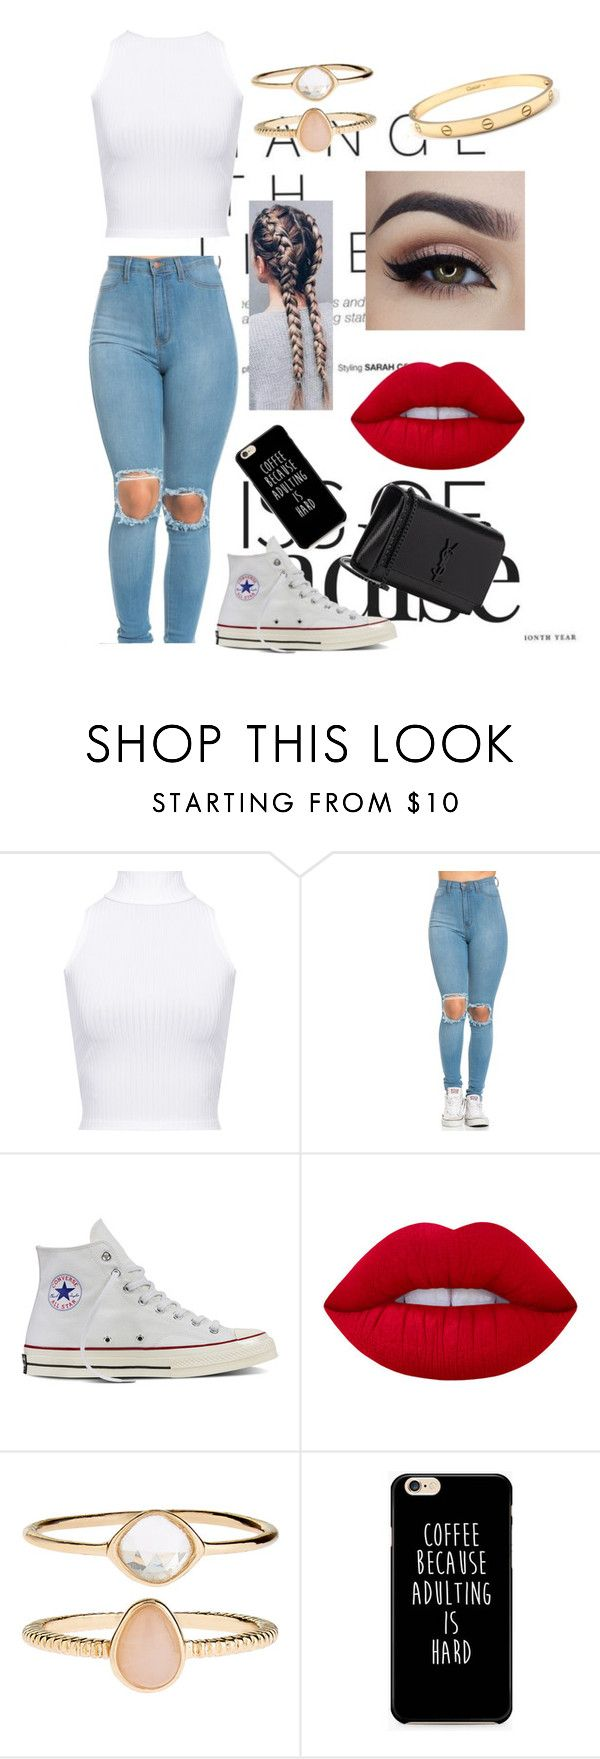 """Untitled #10"" by daisyloo1997 ❤ liked on Polyvore featuring WearAll, Converse, Lime Crime, Accessorize and Yves Saint Laurent"